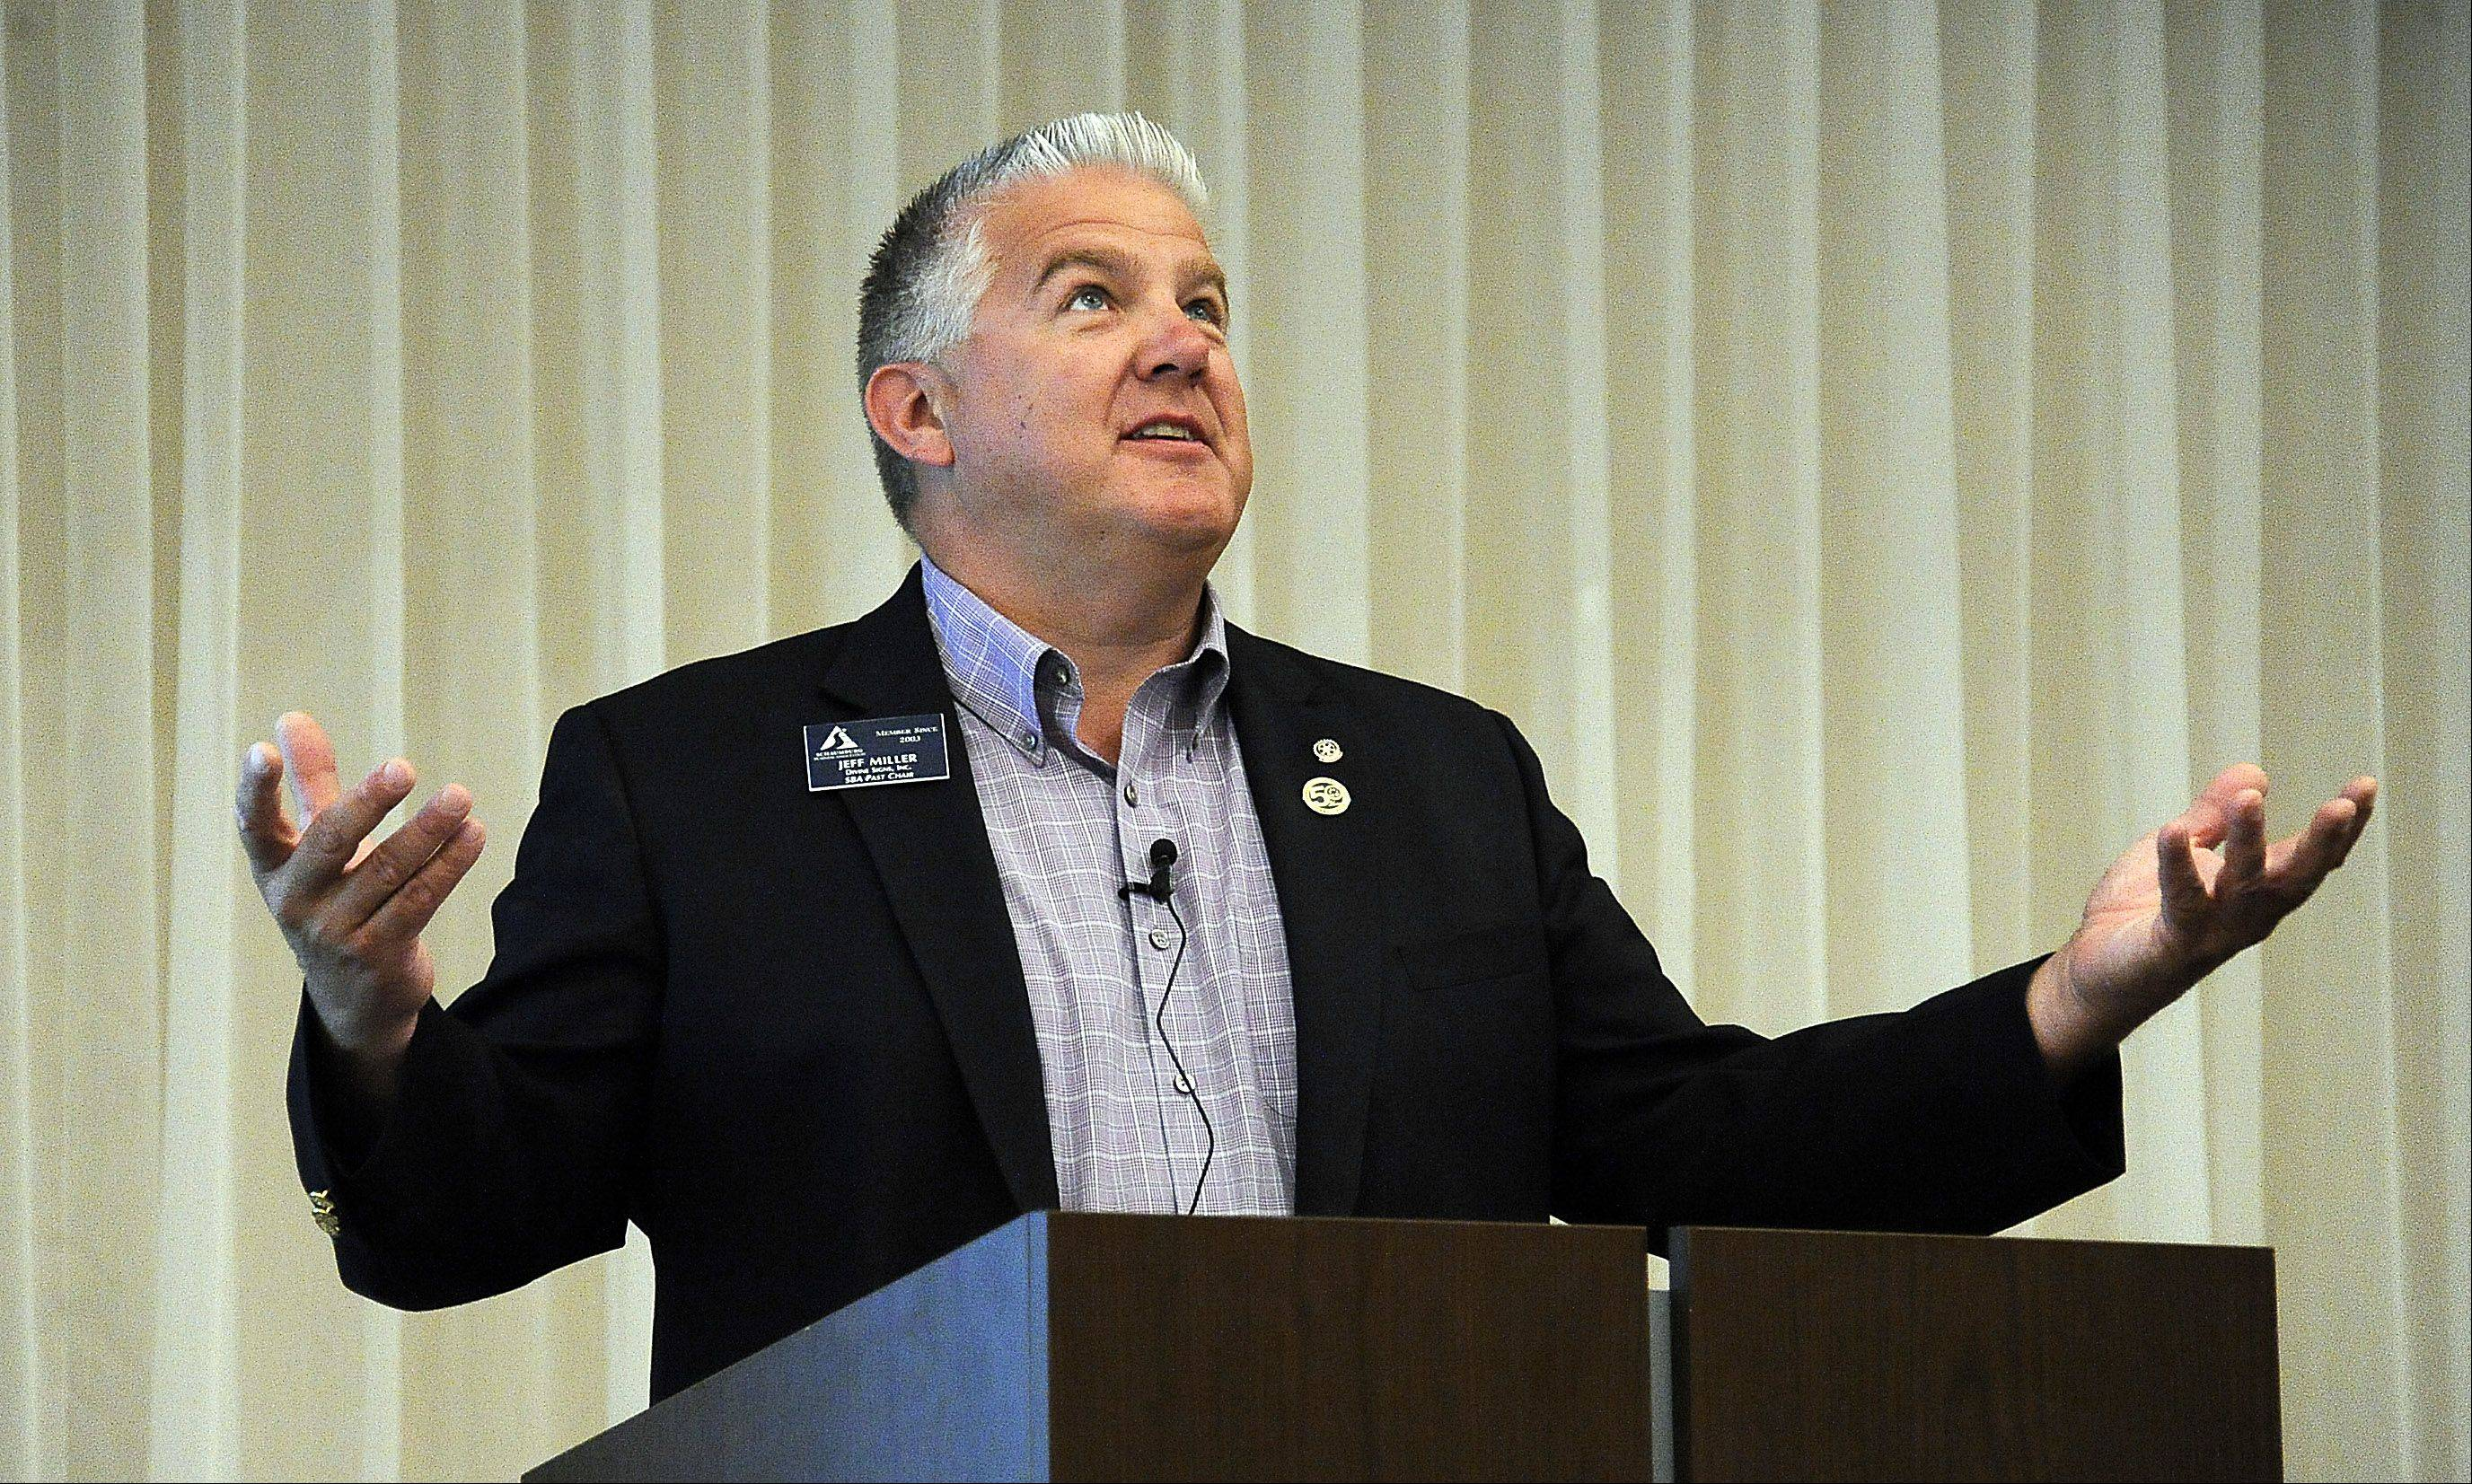 Jeff Miller, owner of Divine Signs in Schaumburg and survivor of the crash of United Airlines Flight 232 in July 1989, talks about what it was like that day at the Schaumburg Business Association breakfast on Tuesday.